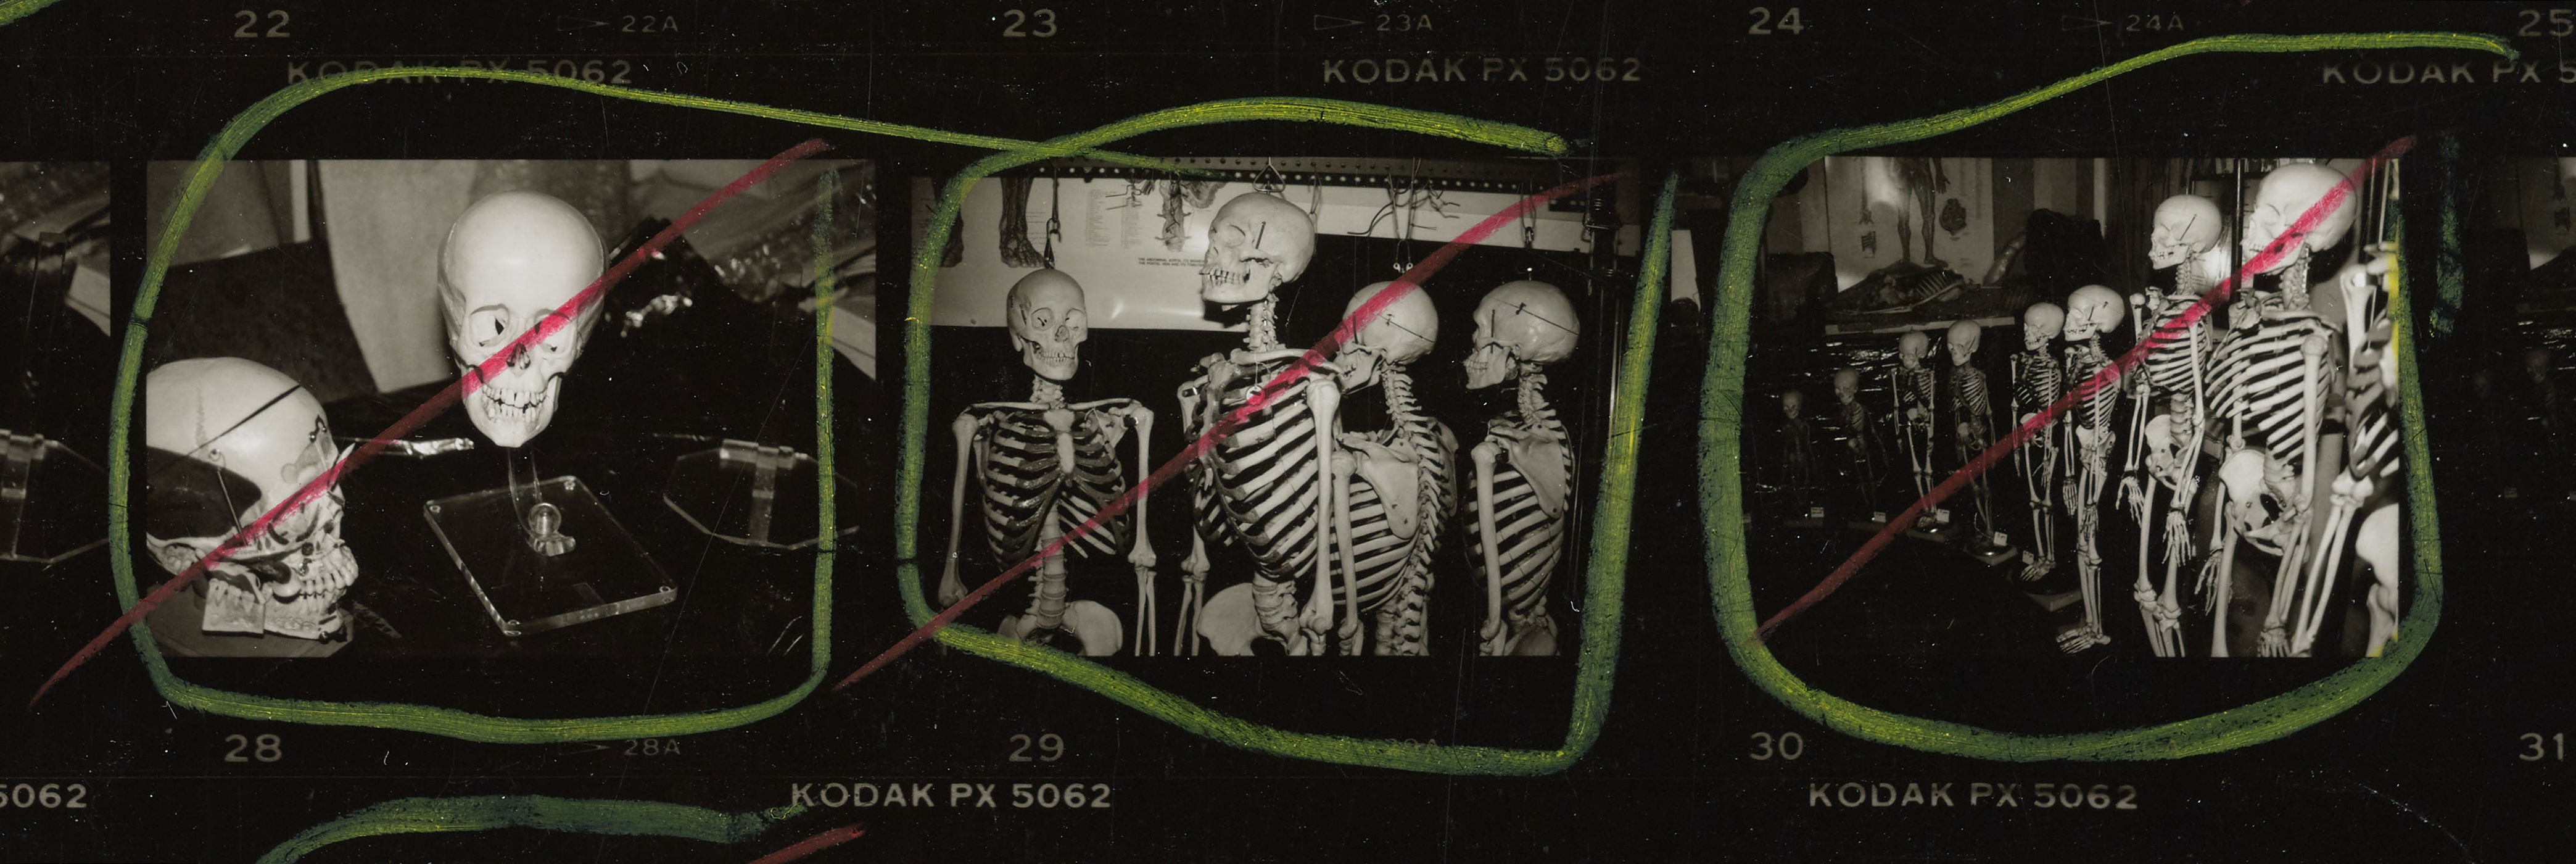 Andy Warhol contact sheet with skulls and skeletons